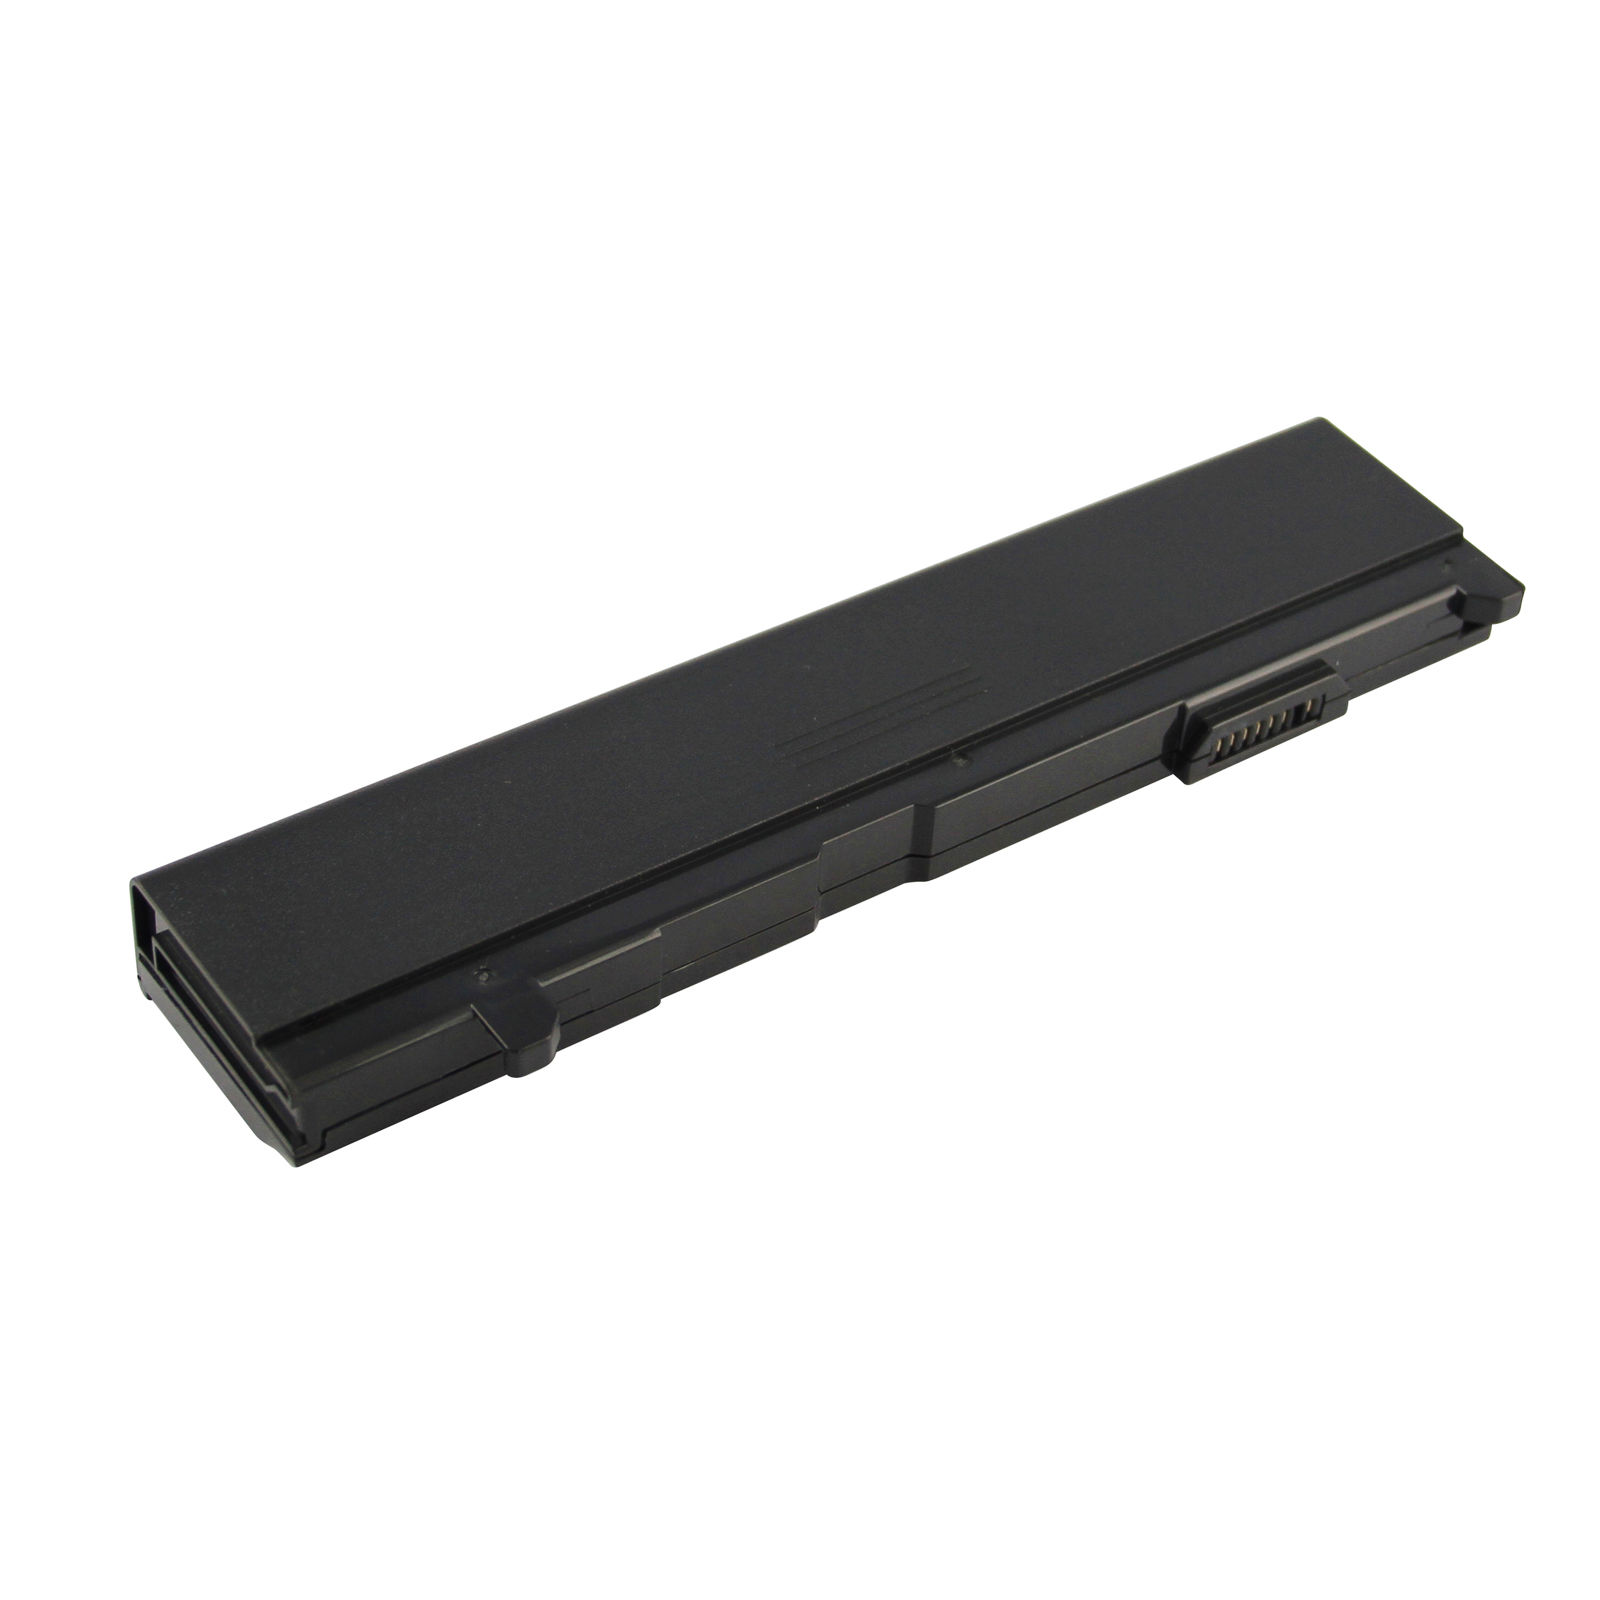 Replacement Toshiba Satellite A105-S4134 Battery